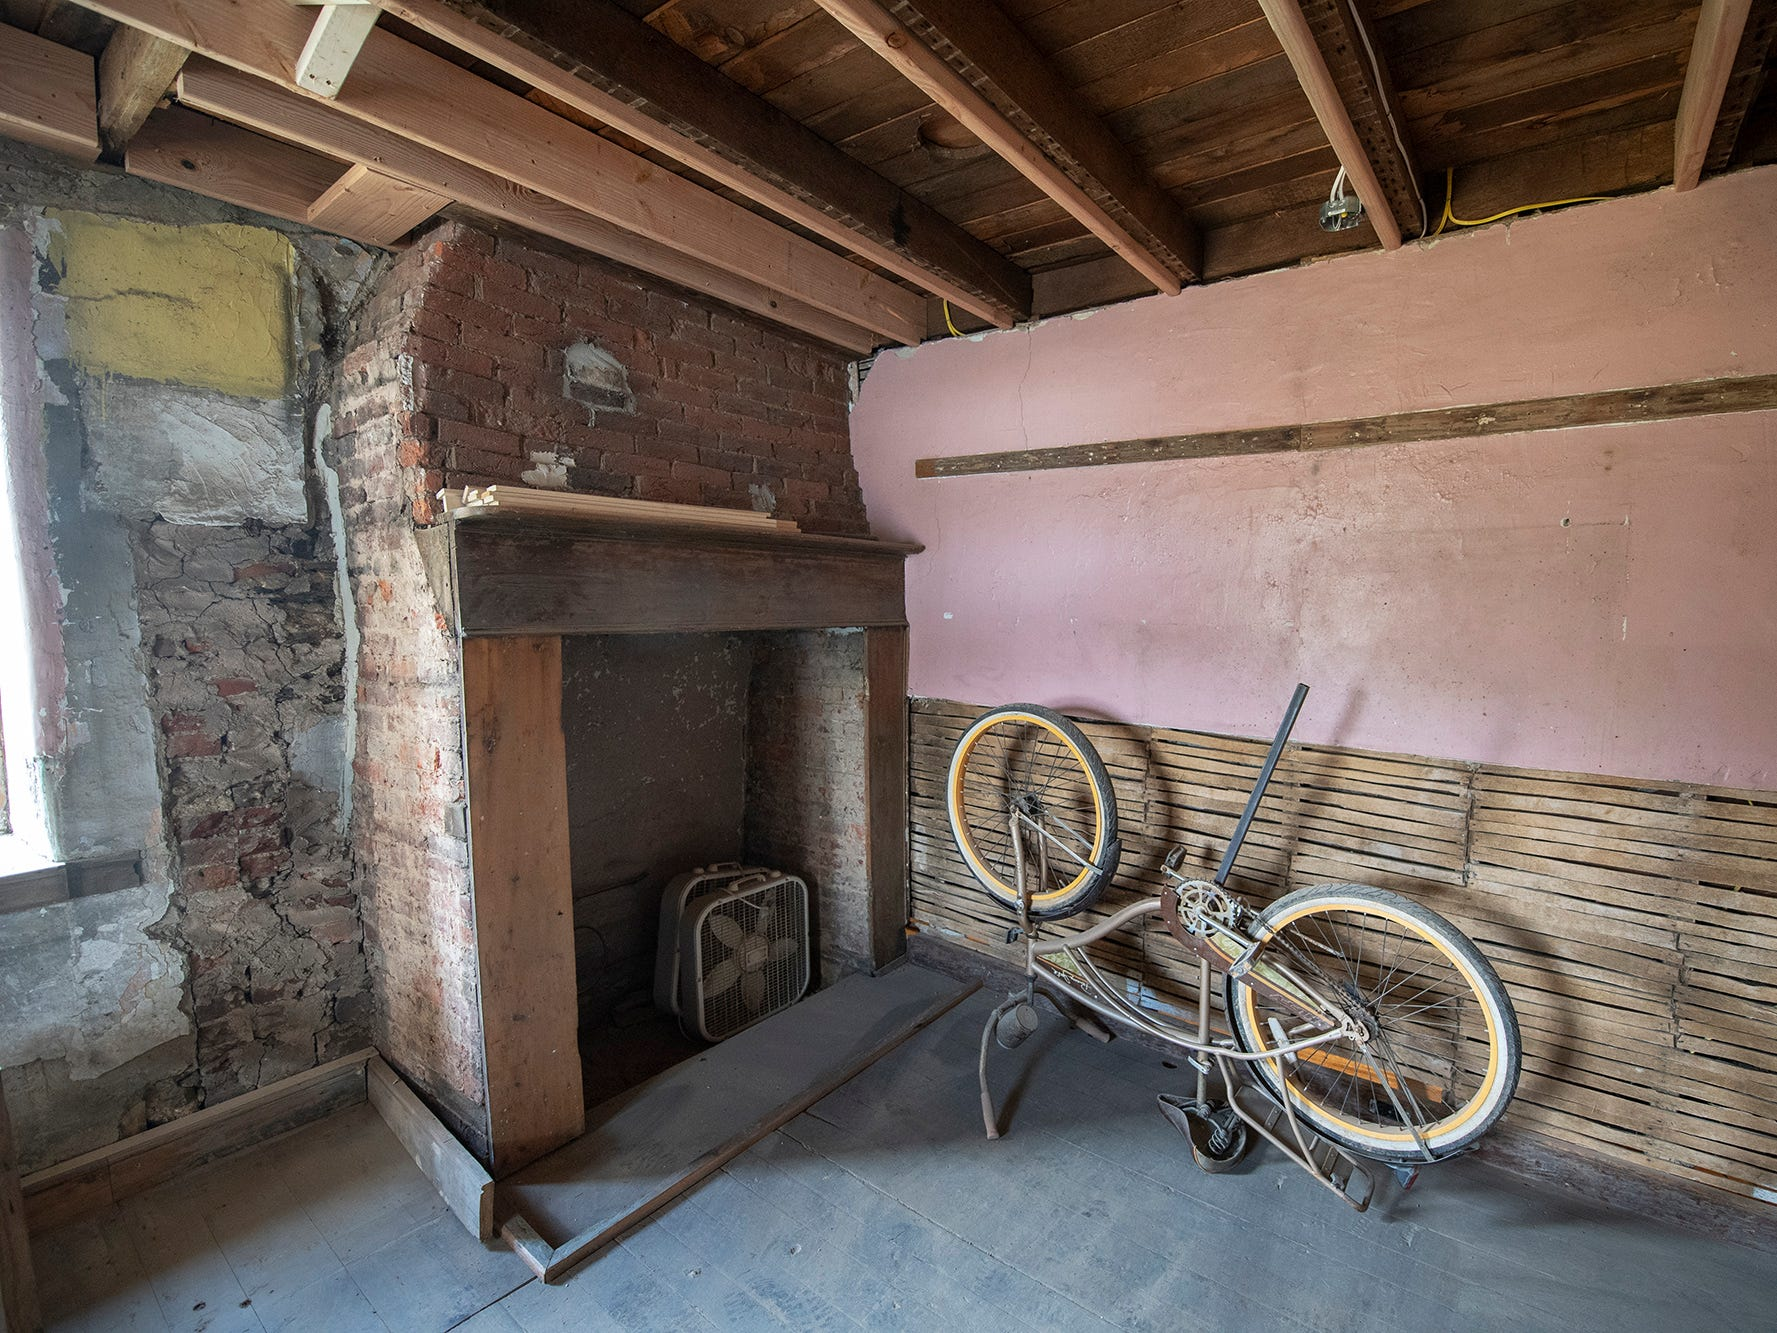 This is looking at a first-floor fireplace in the stone building under renovation in Seitzland Village outside of Glen Rock.